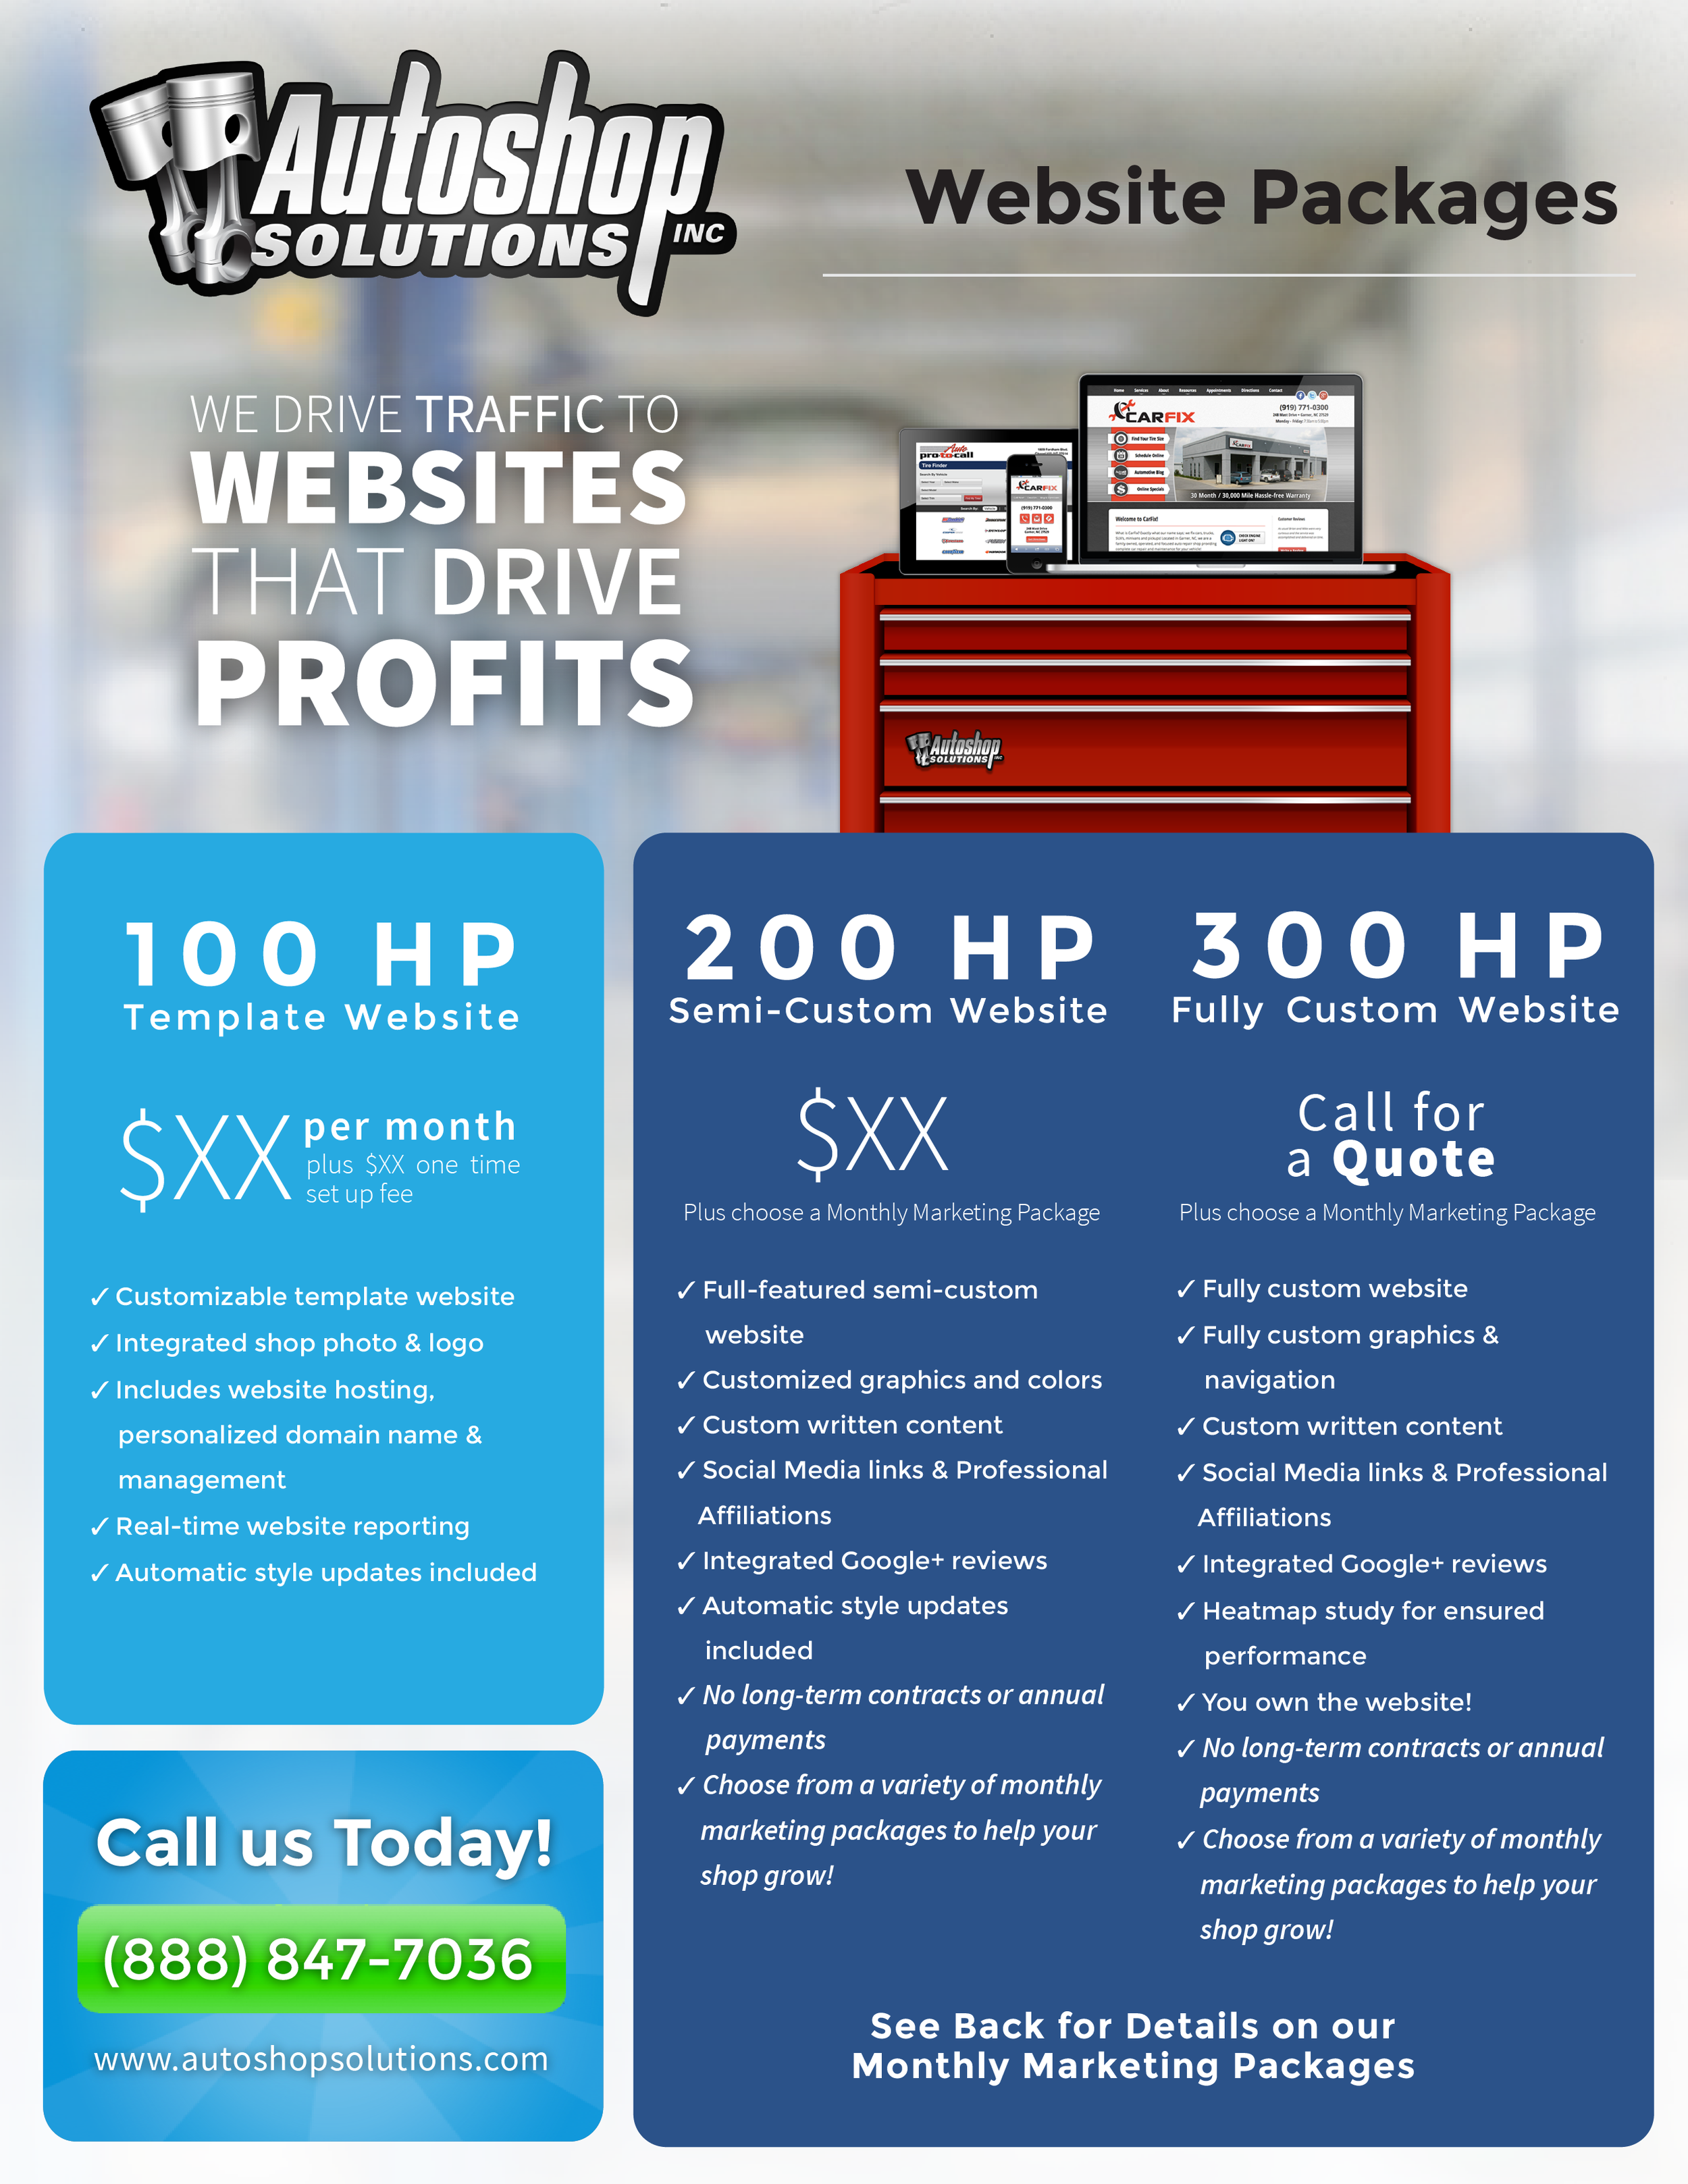 Autoshop Solutions Inc. Website Packages Flyer - Front